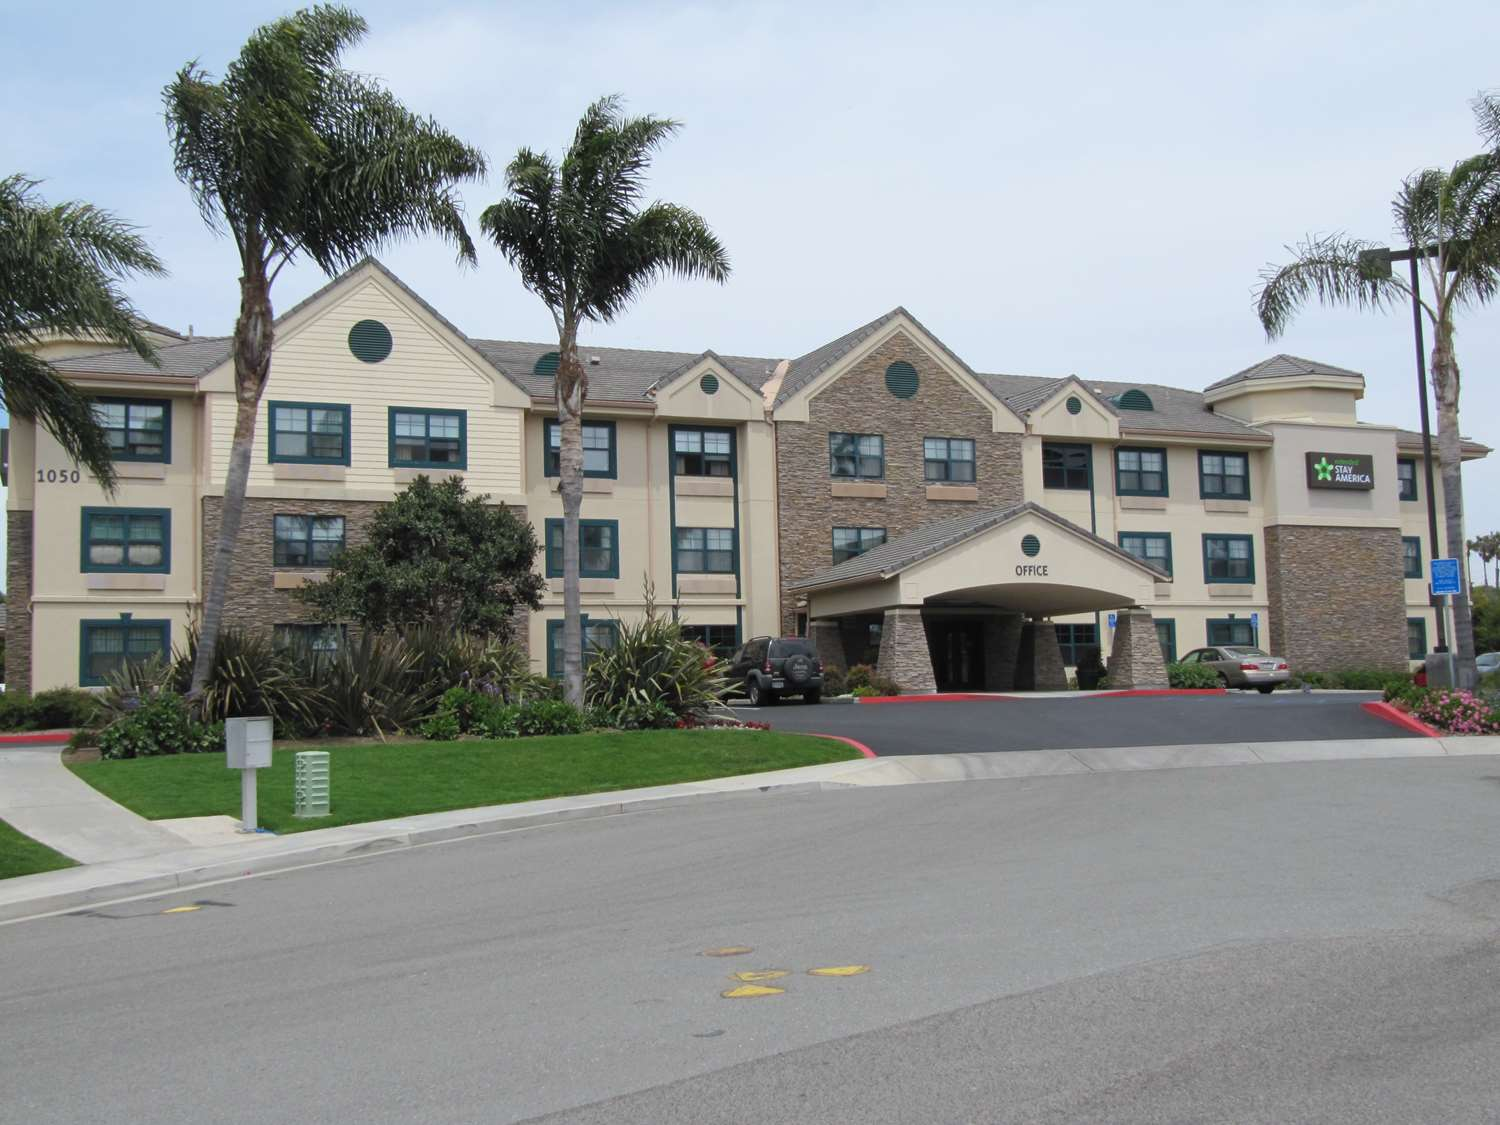 Extended Stay America Carlsbad Village by the Sea